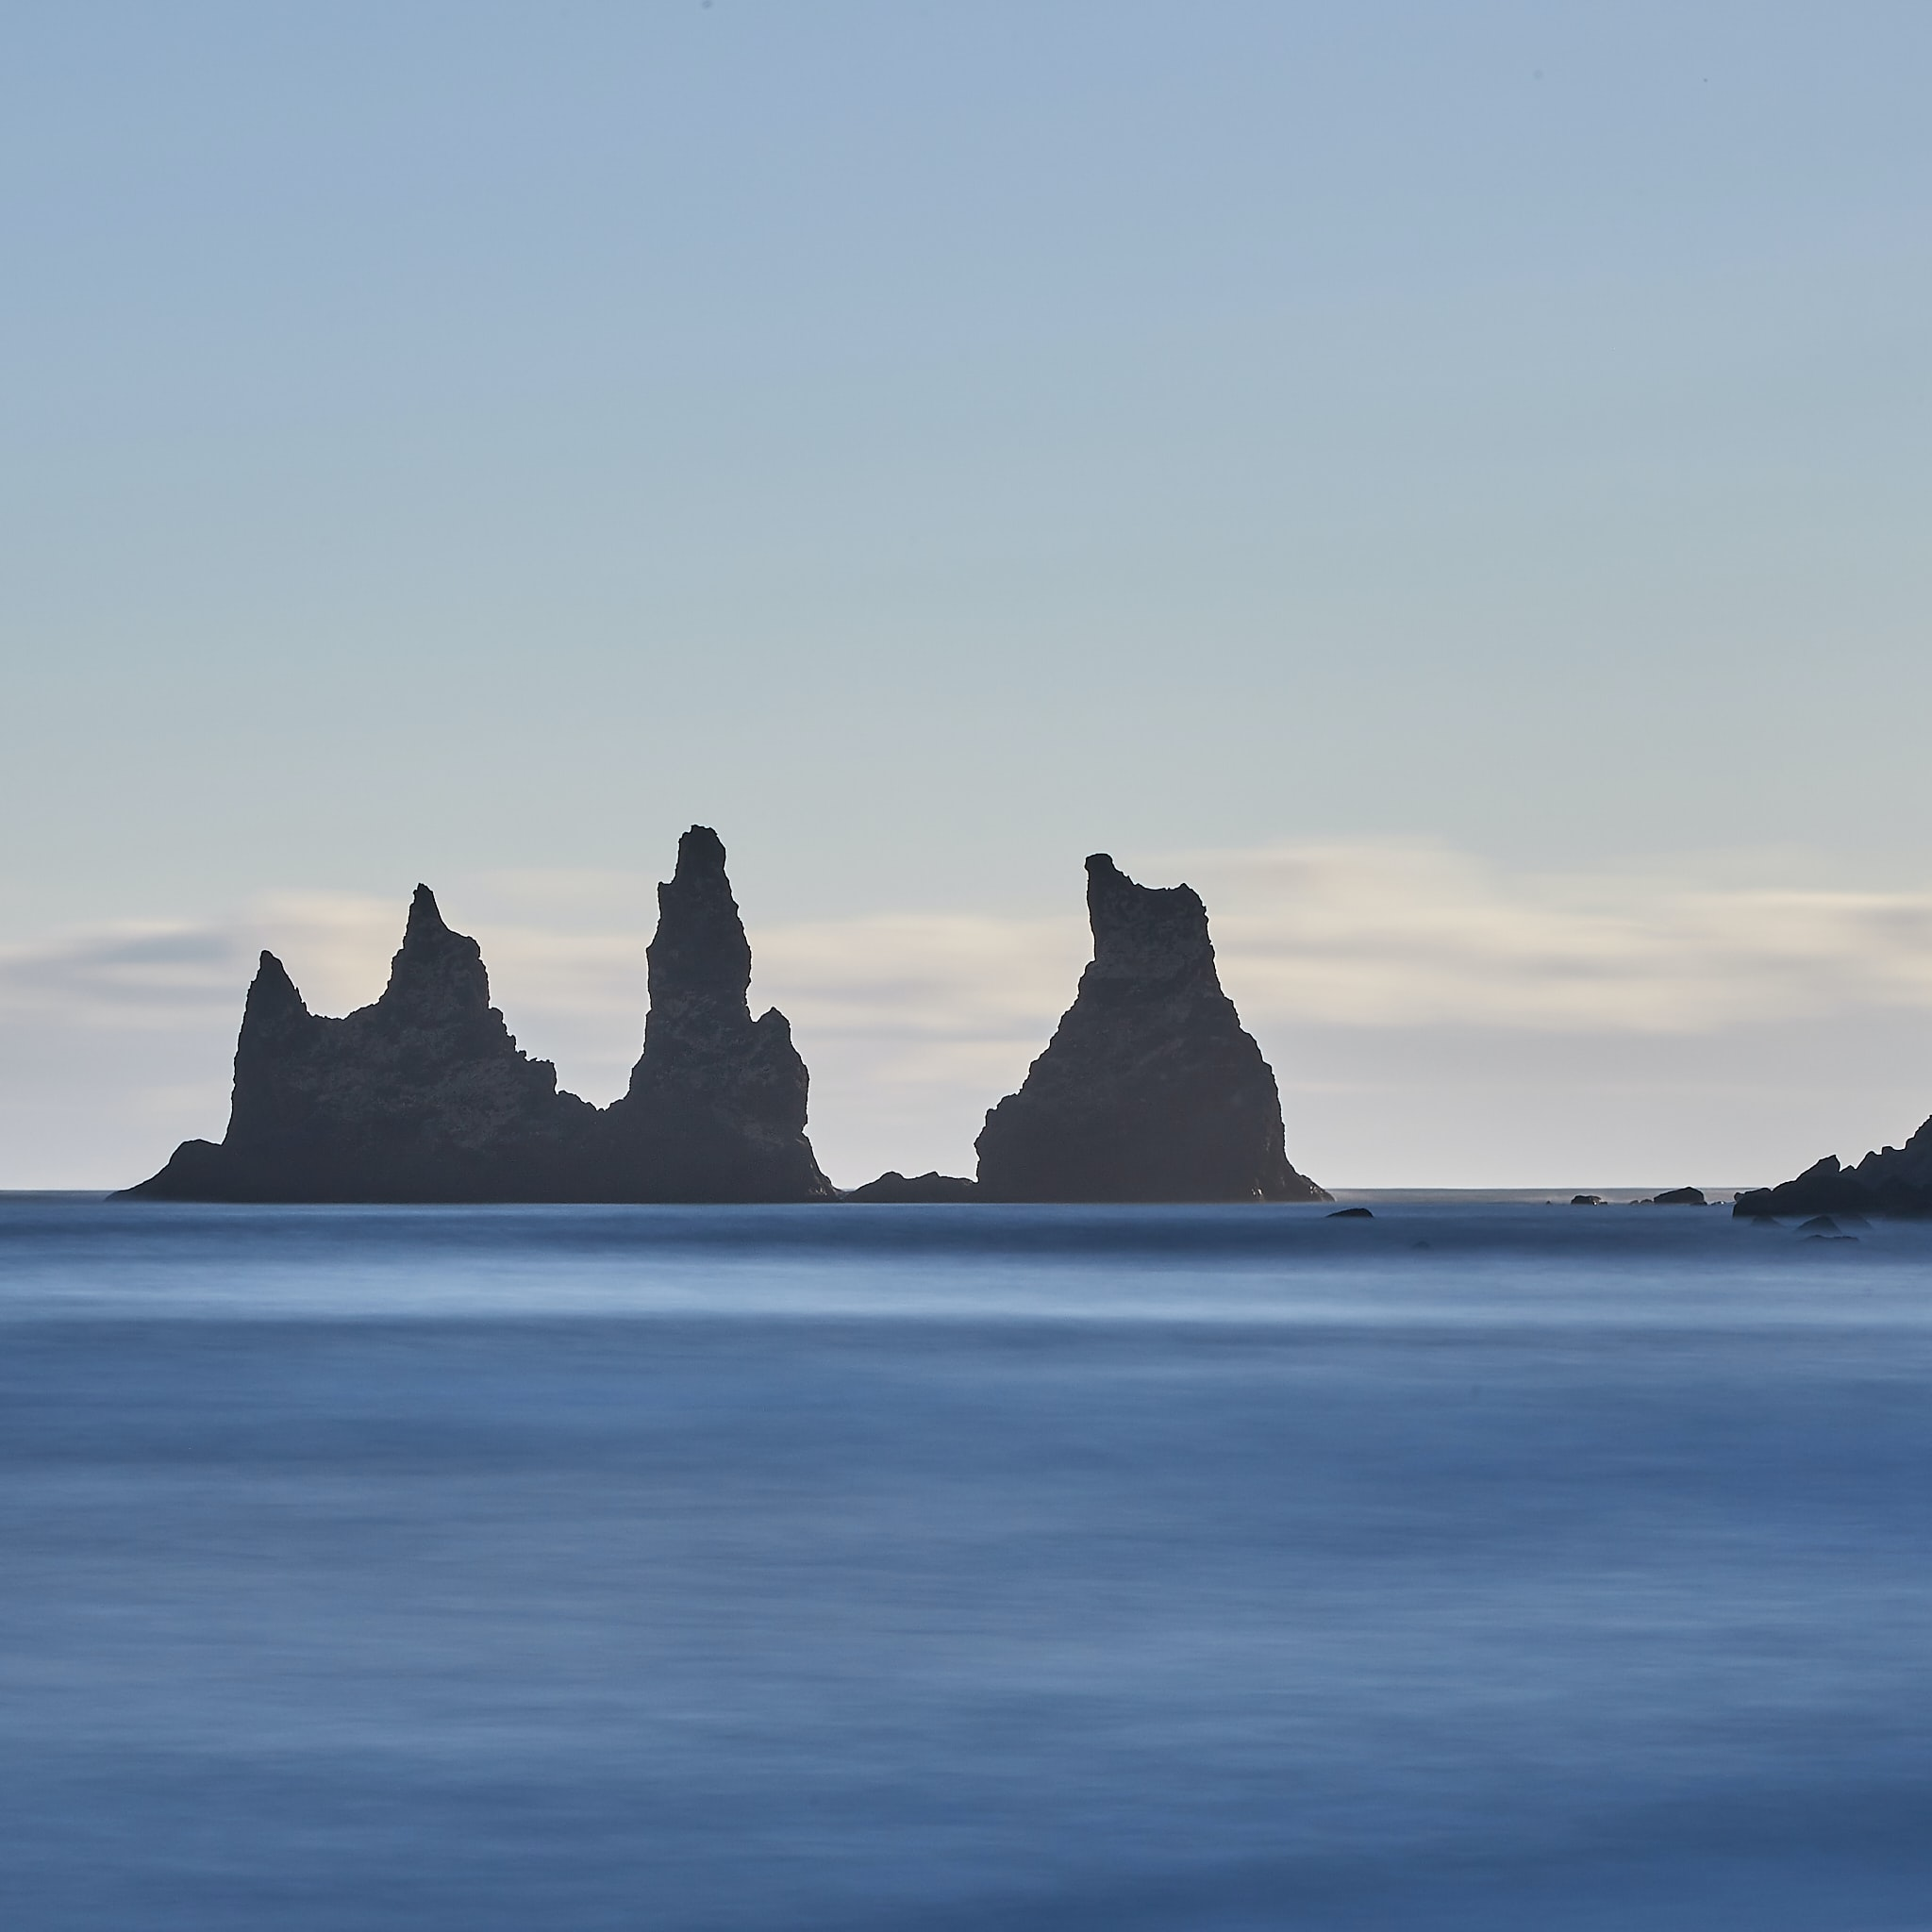 silhouette of rock formation on sea